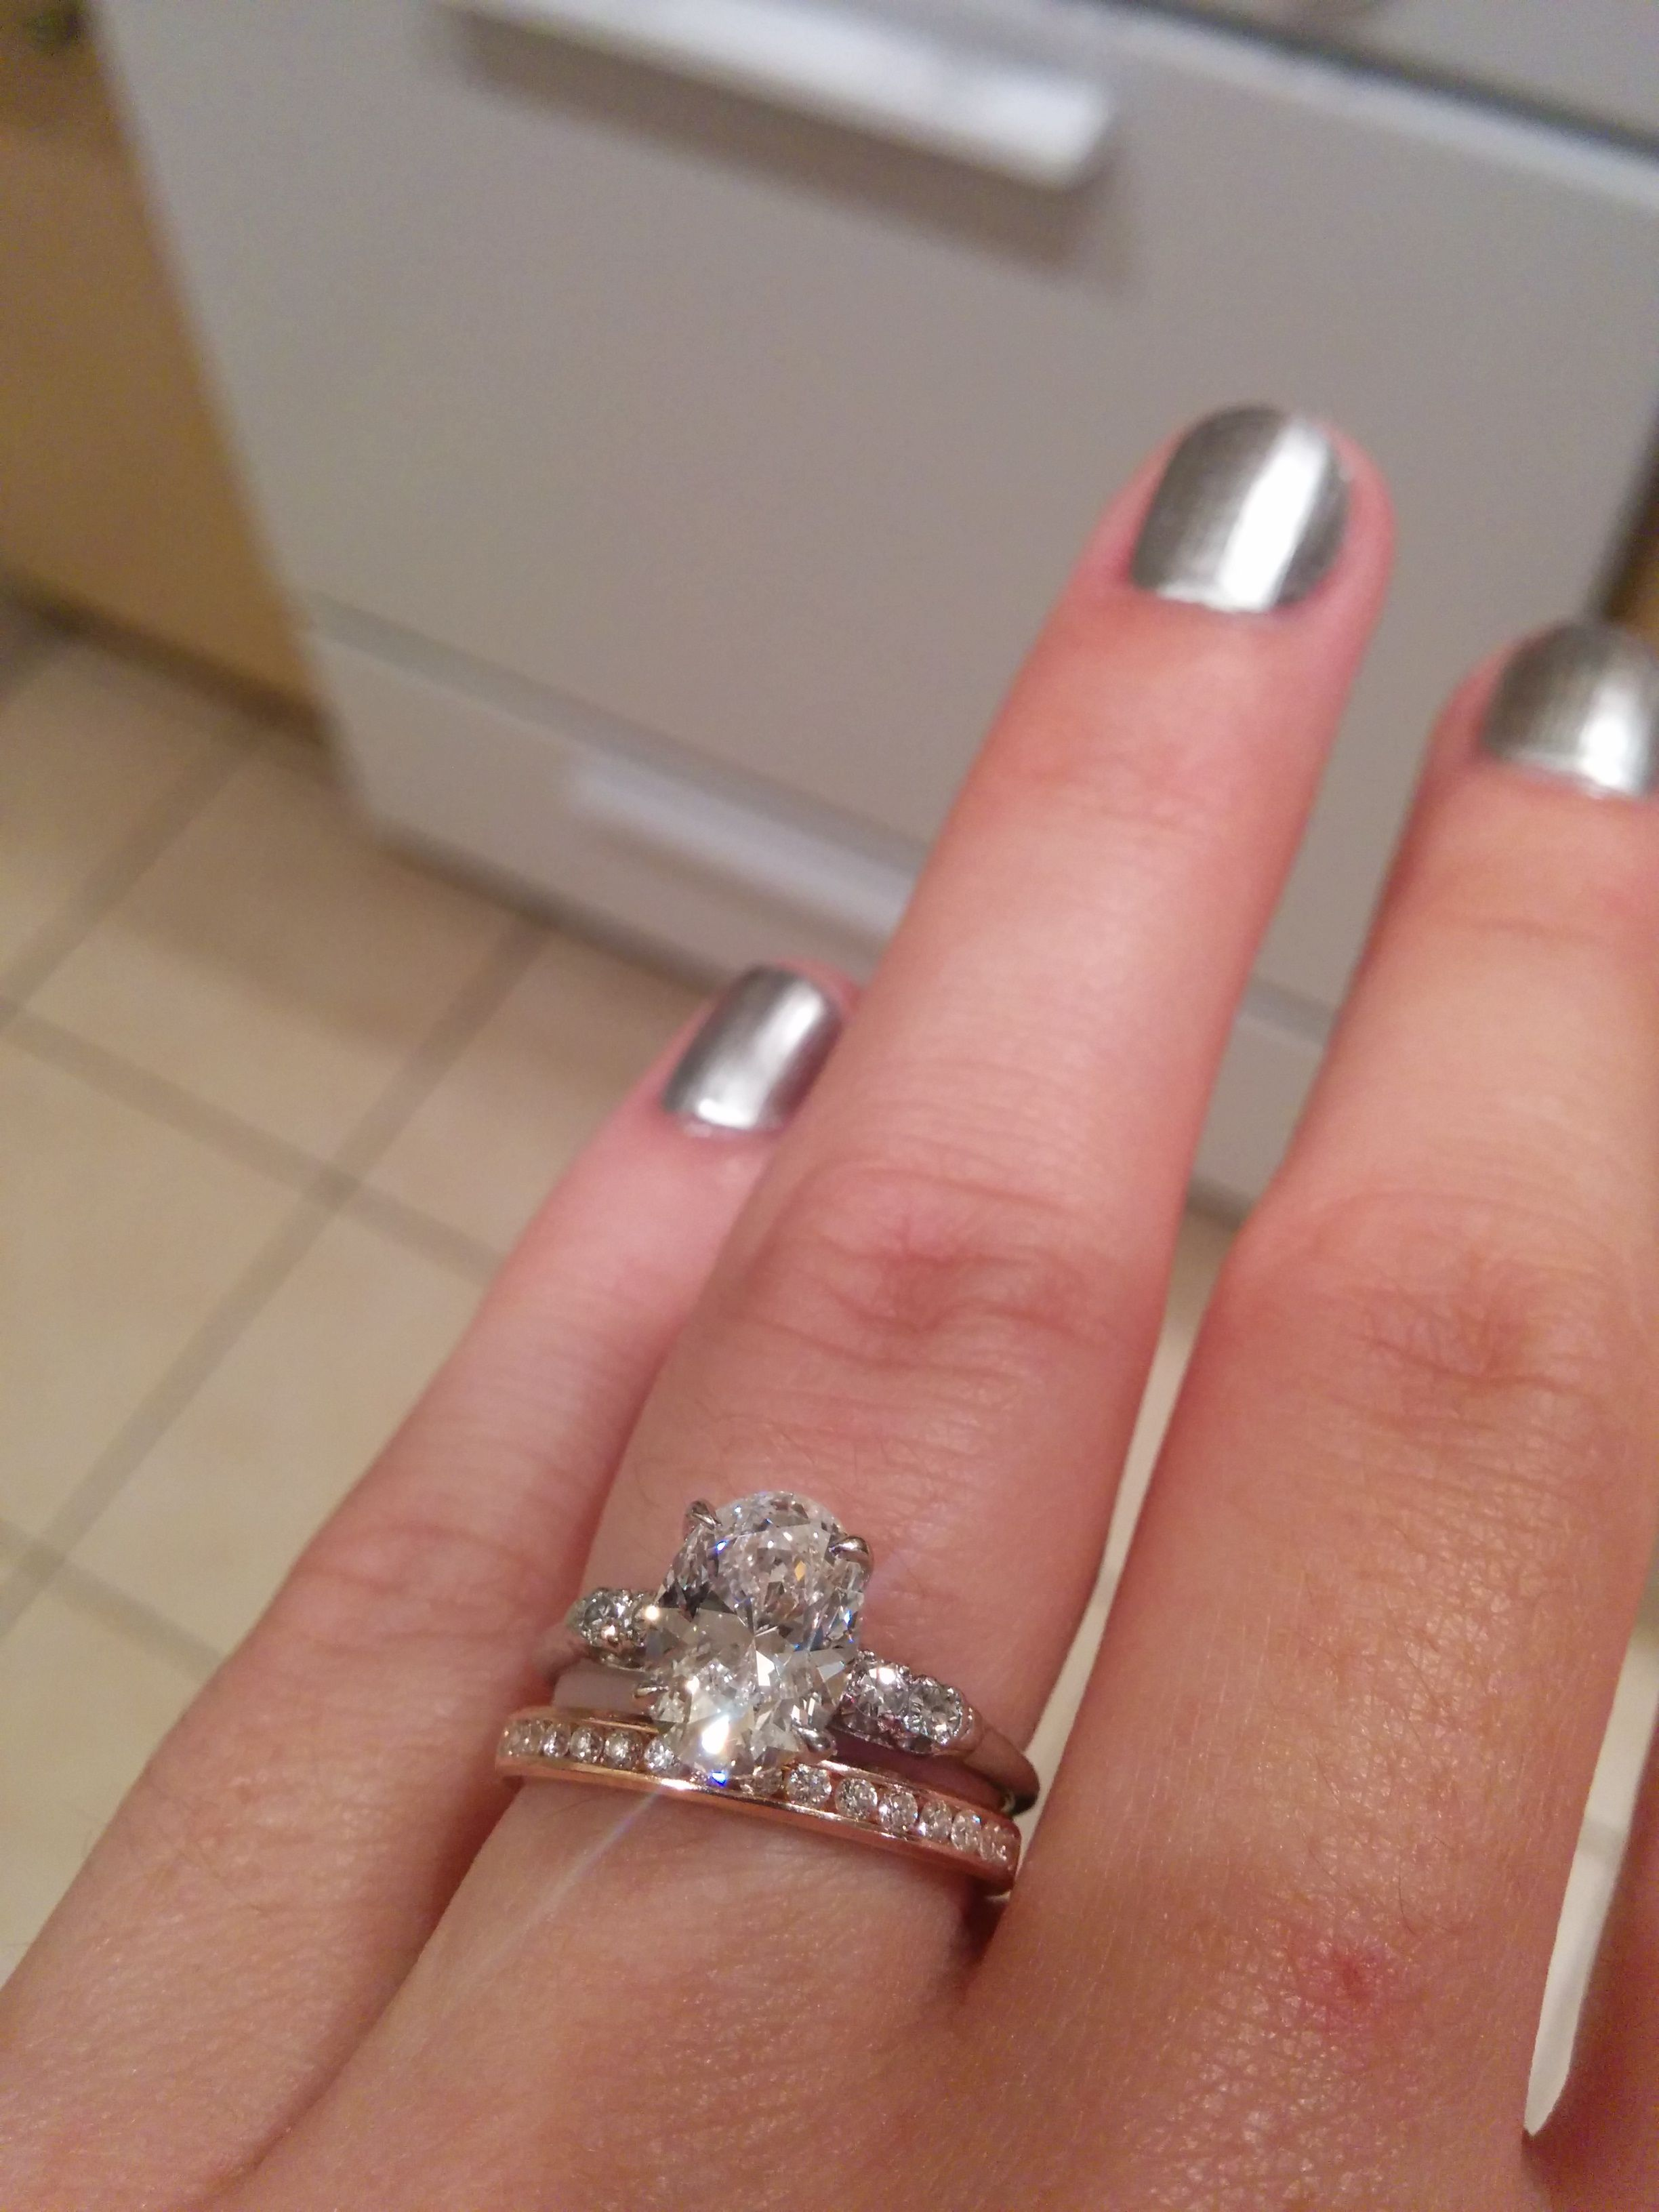 Post Your Oval Rings! - Weddingbee | Page 8 | Ring | Pinterest ...